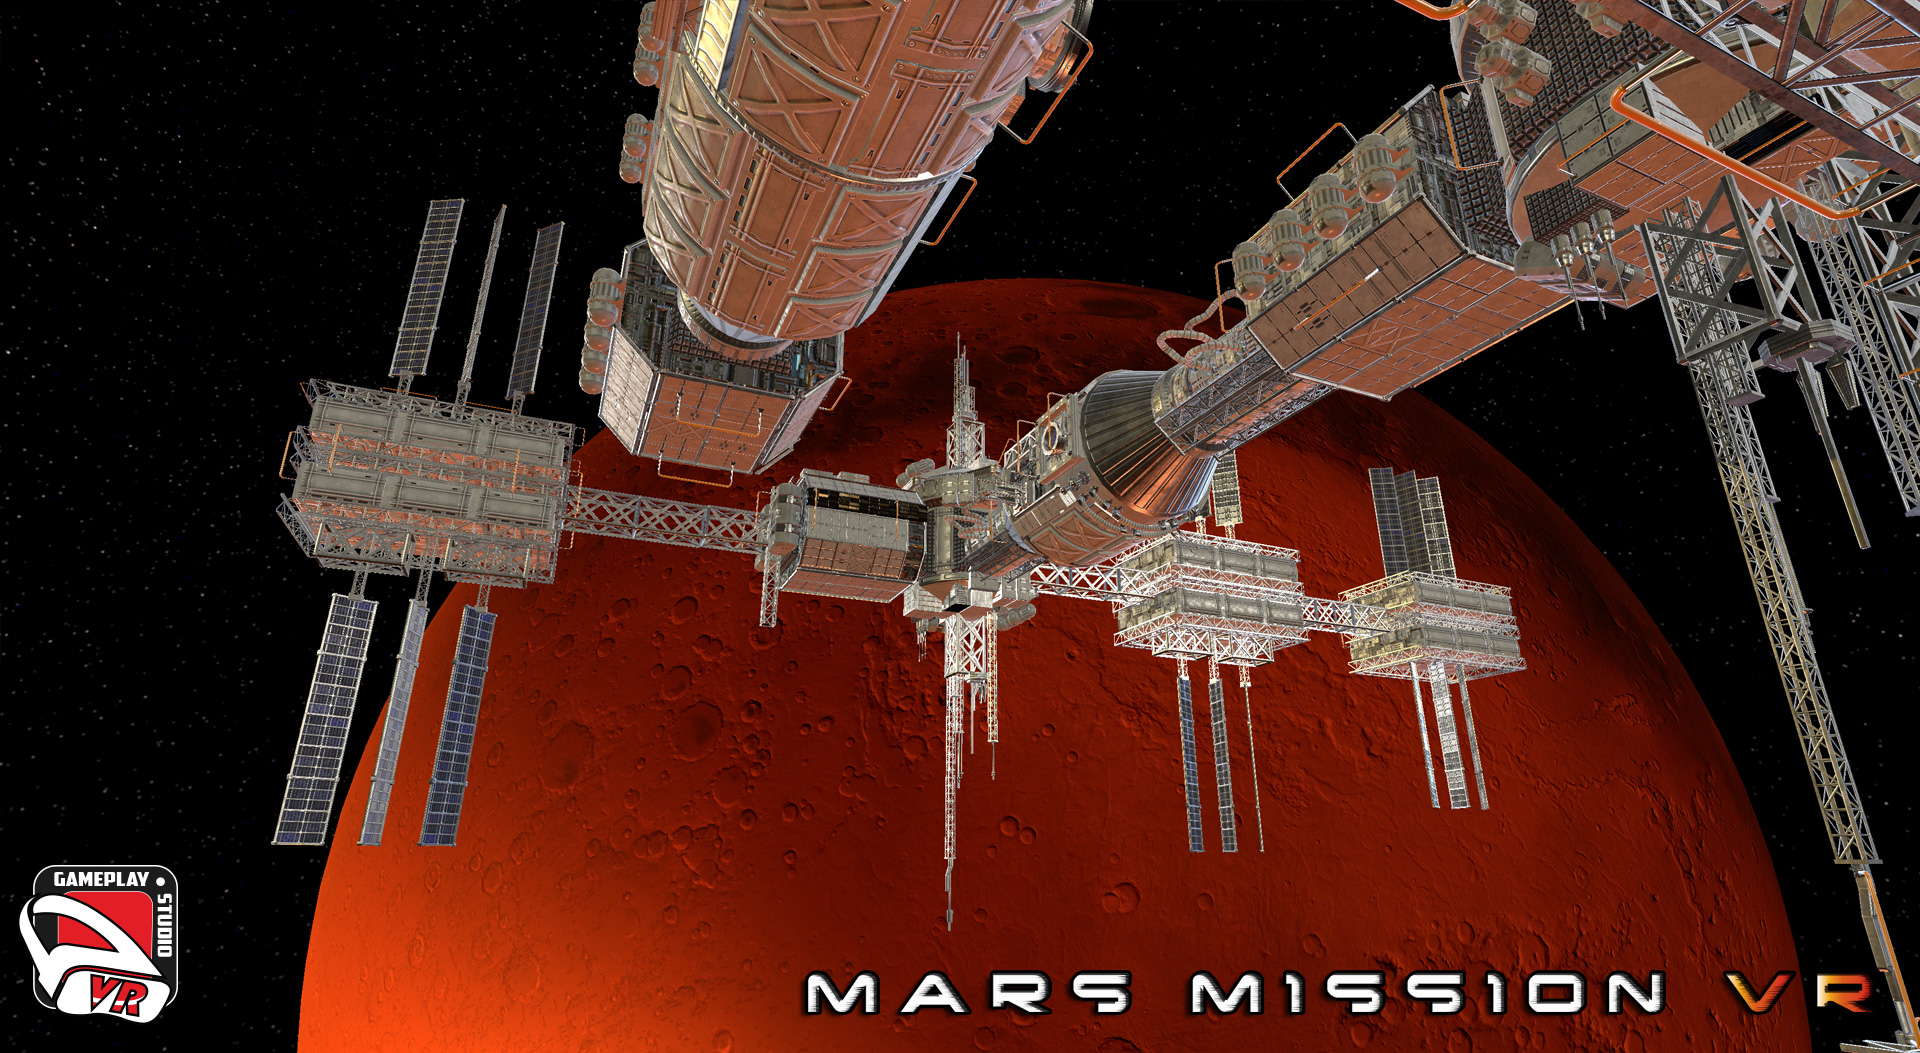 mars mission vr - space station